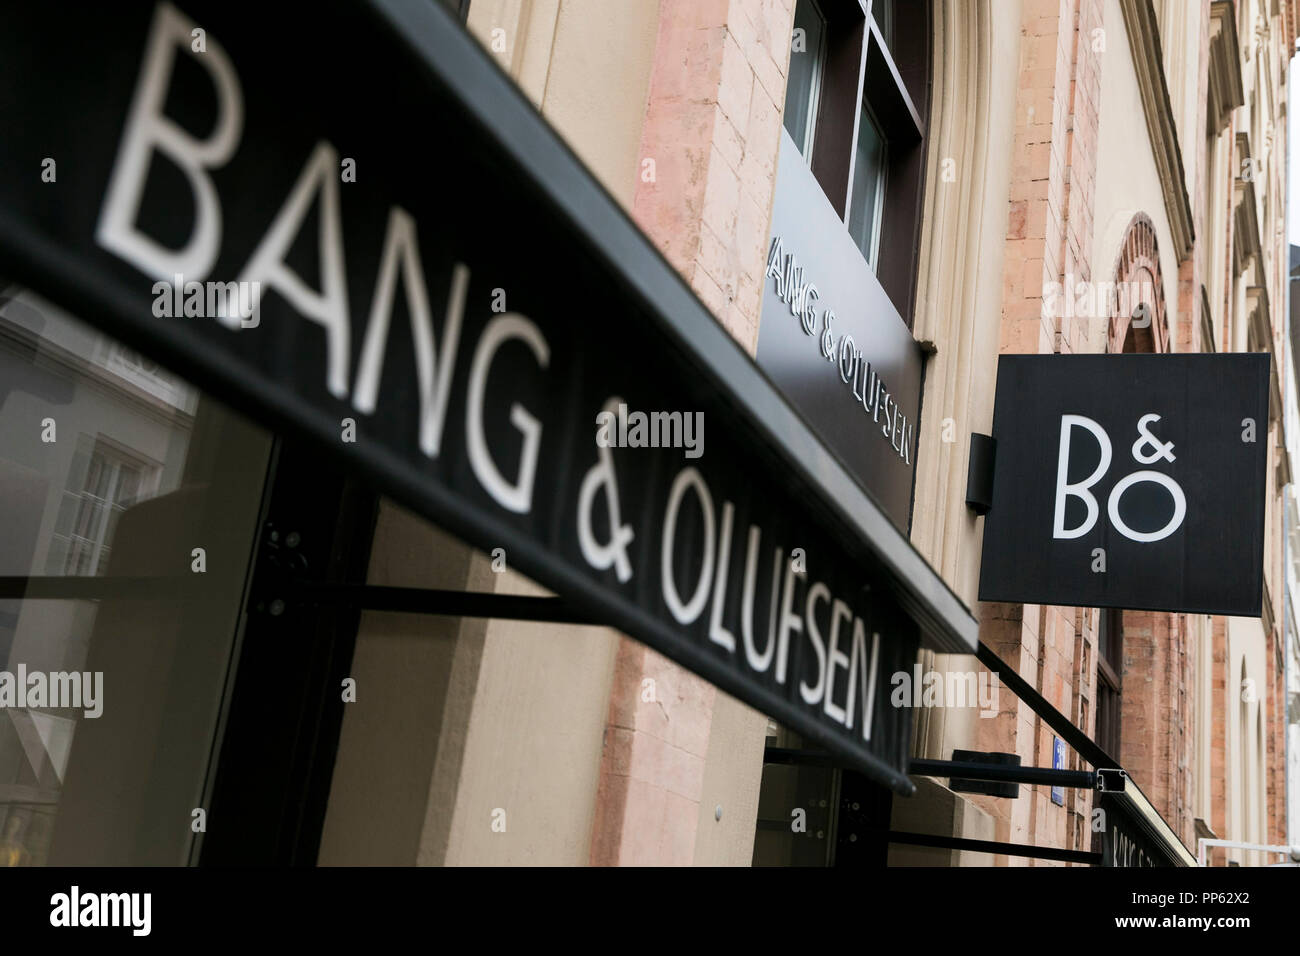 A logo sign outside of a Bang & Olufsen retail store in Munich, Germany, on September 2, 2018. - Stock Image